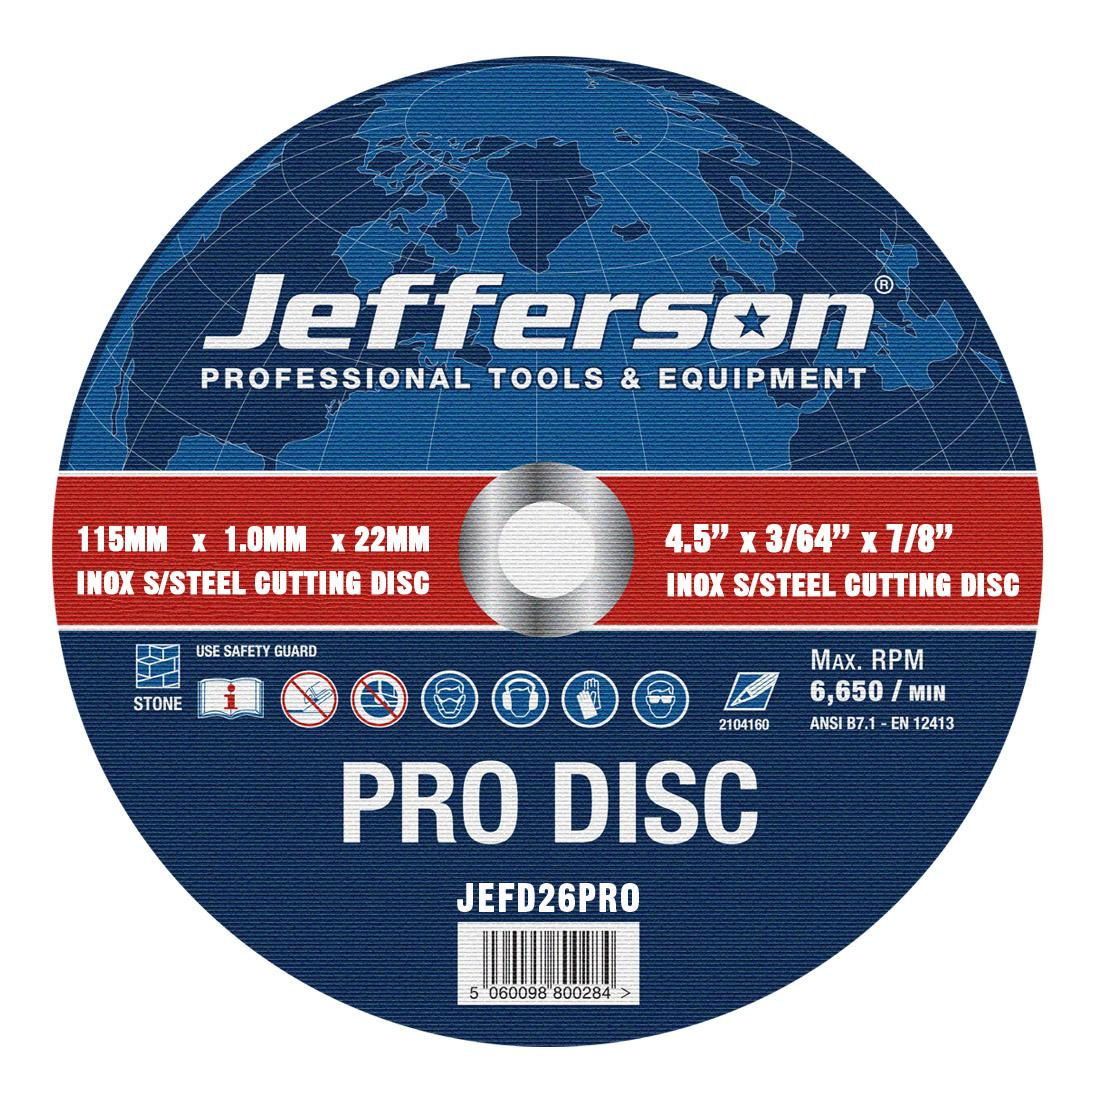 "4.5"" X 1.0mm Inox Cutting Disc 22mm Bore Jefd26pro"